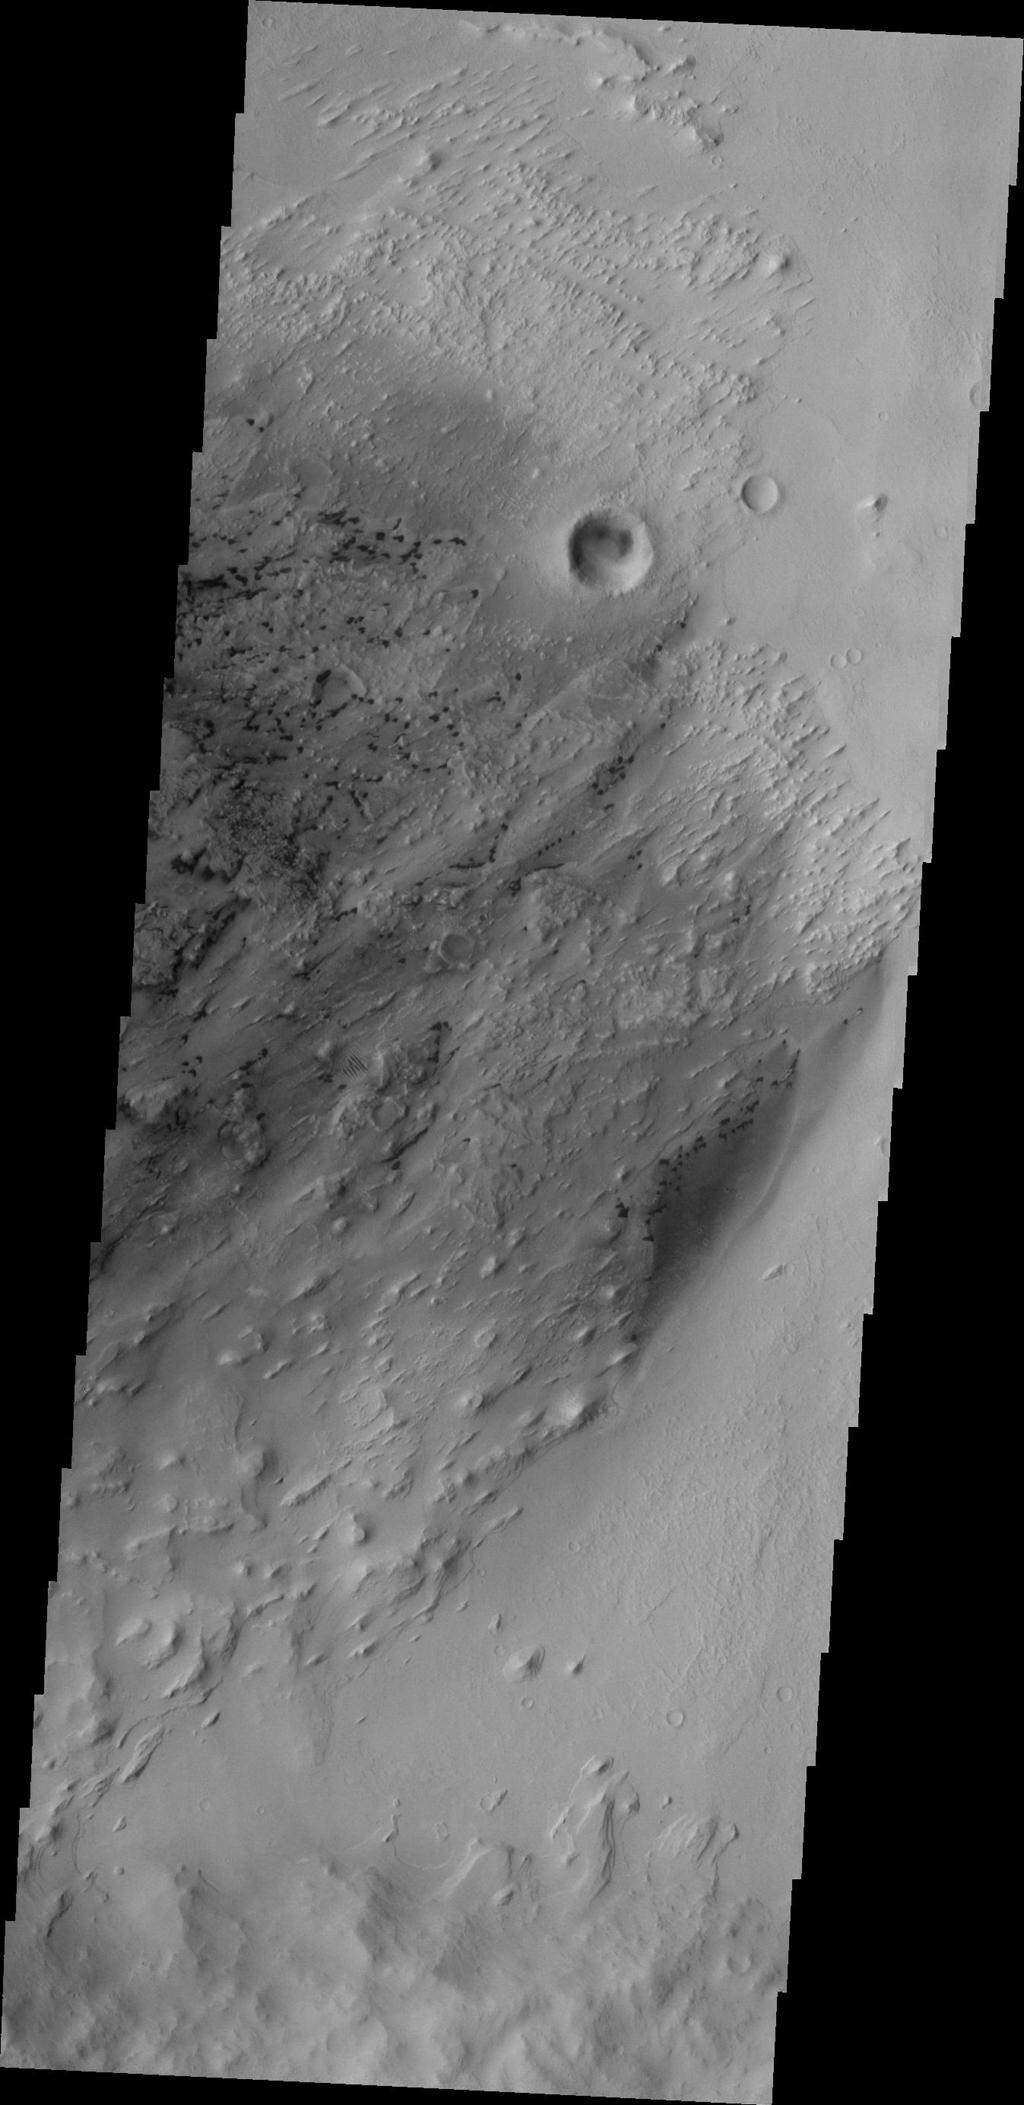 The small, dark features are sand dunes in this image by NASA's 2001 Mars Odyssey spacecraft. The majority of the dunes appear to be located within eroded deposits on the floor of Pastuer Crater.